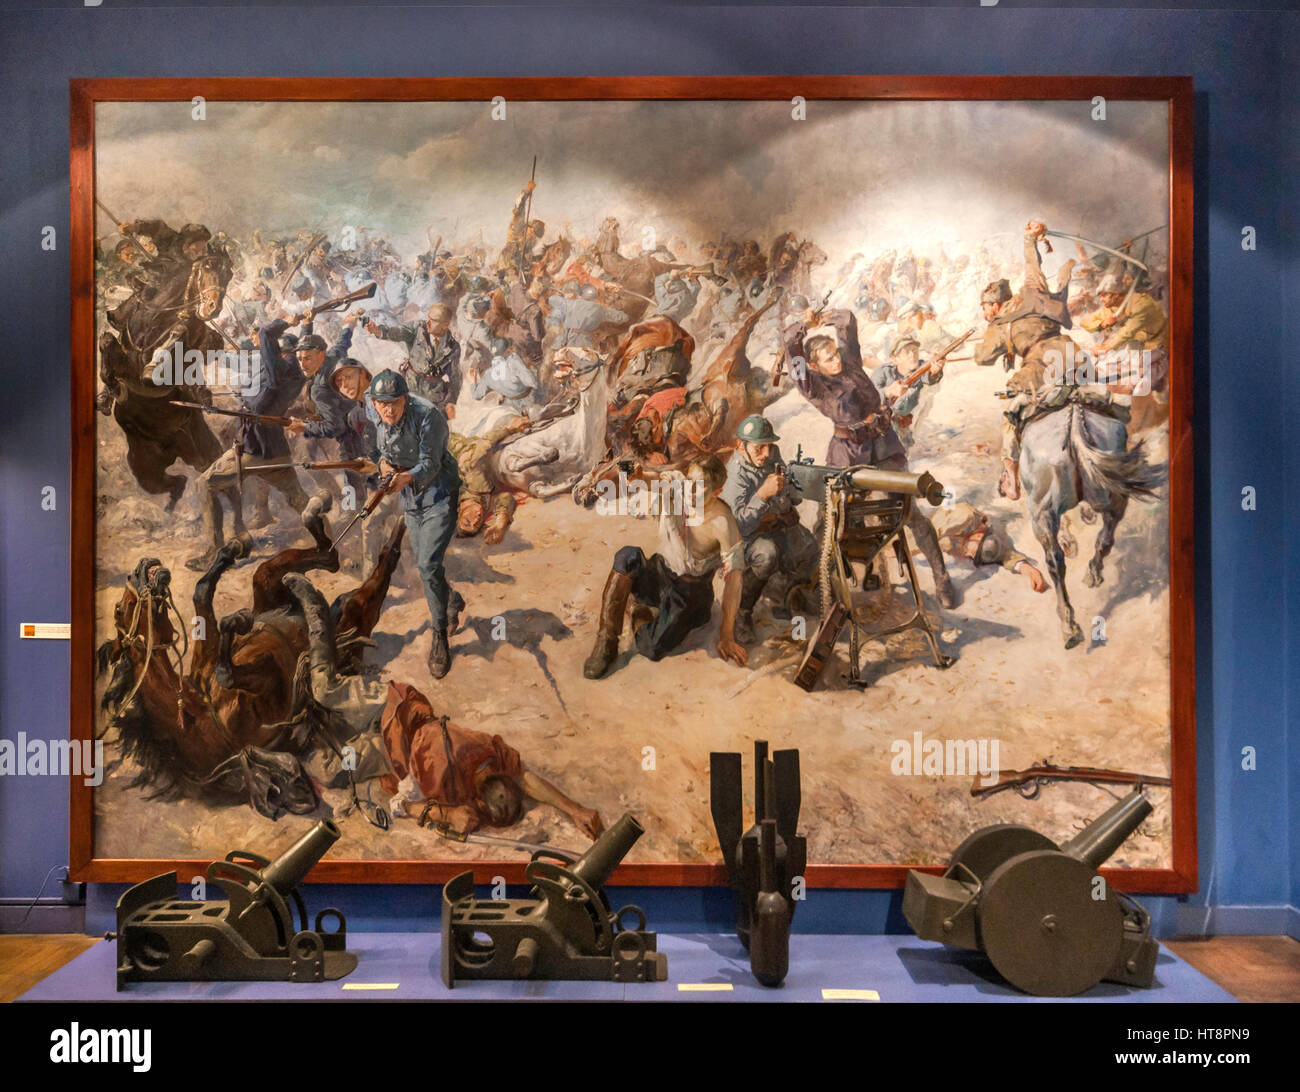 Polish-Soviet War of 1920 exhibits, Battle of Zadworze painting by Stefan Batorski, Polish Army Museum in Warsaw, - Stock Image